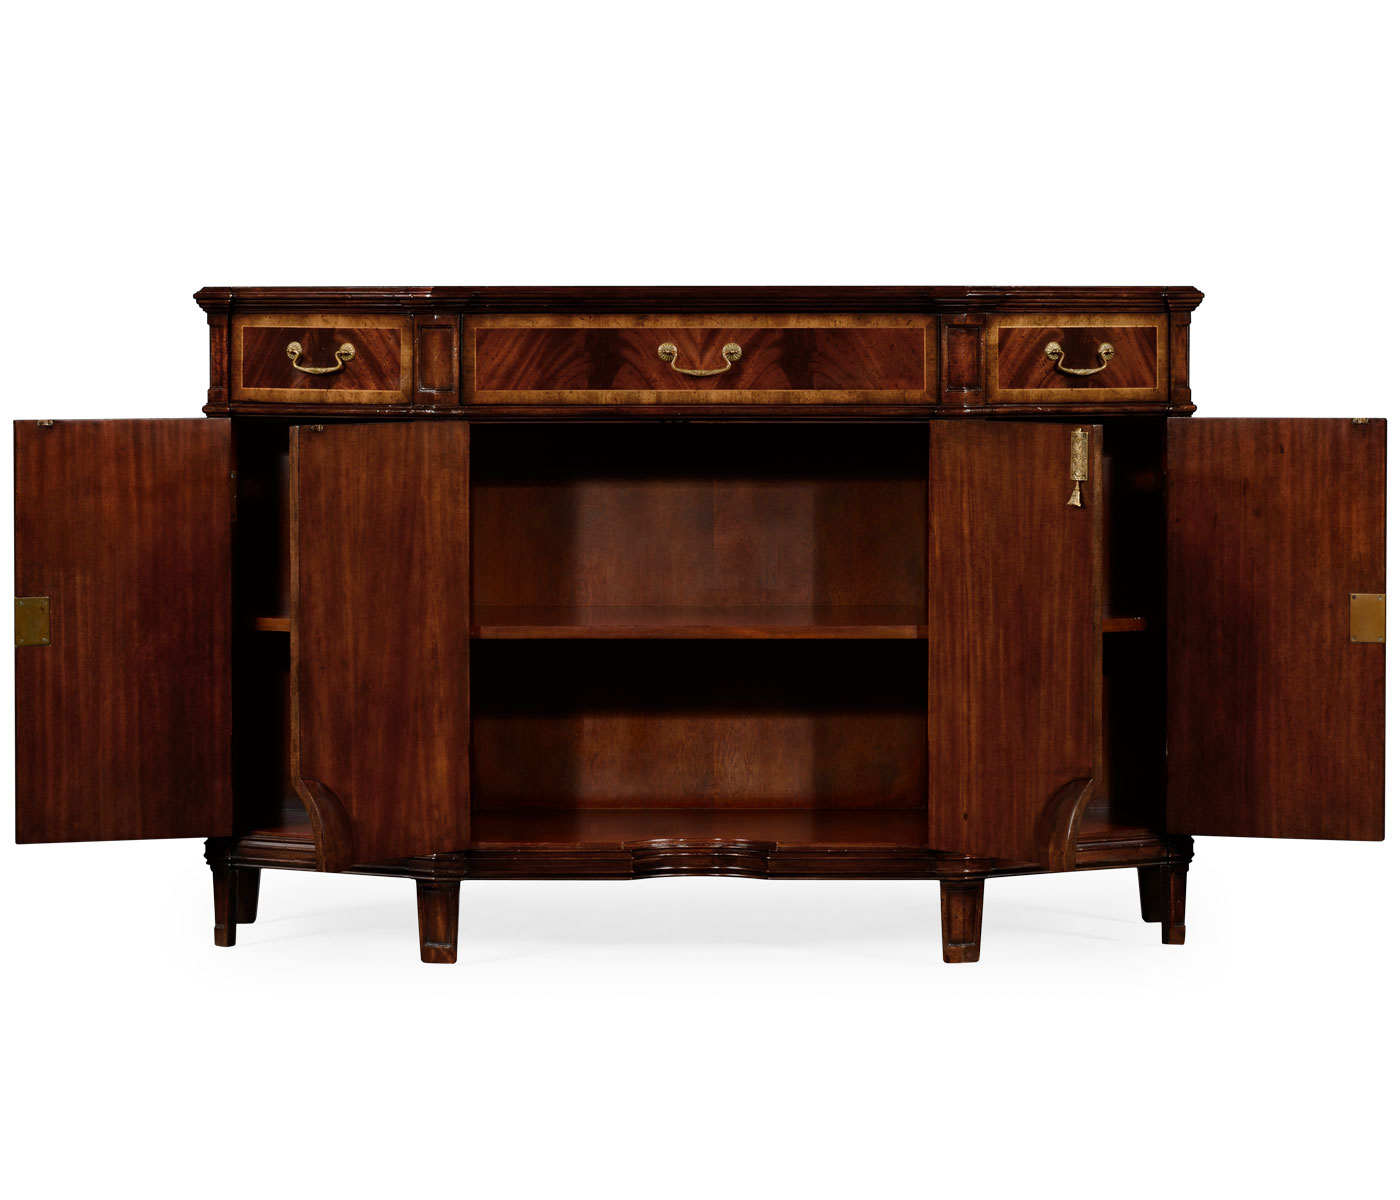 Starburst Mahogany Side Cabinet With Most Popular Starburst 3 Door Sideboards (View 17 of 20)